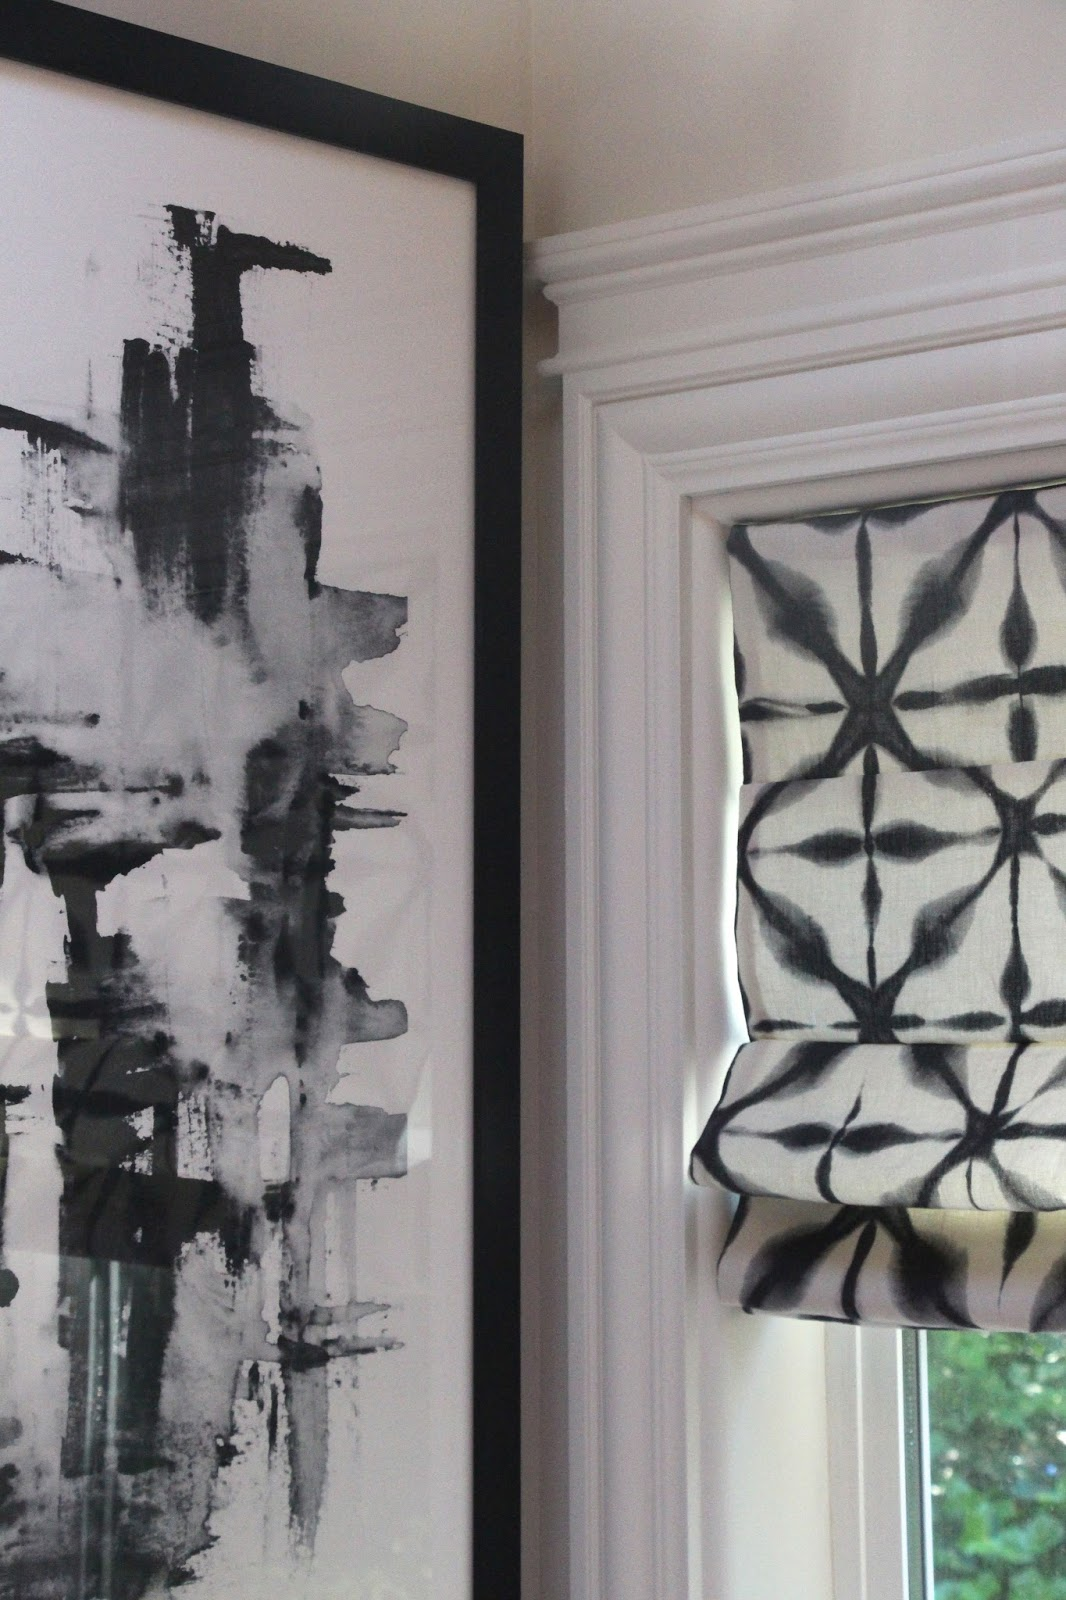 My sweet savannah painting interior doors black - I Think My Favorite Part Is The Architrave Above The Windows And Doors